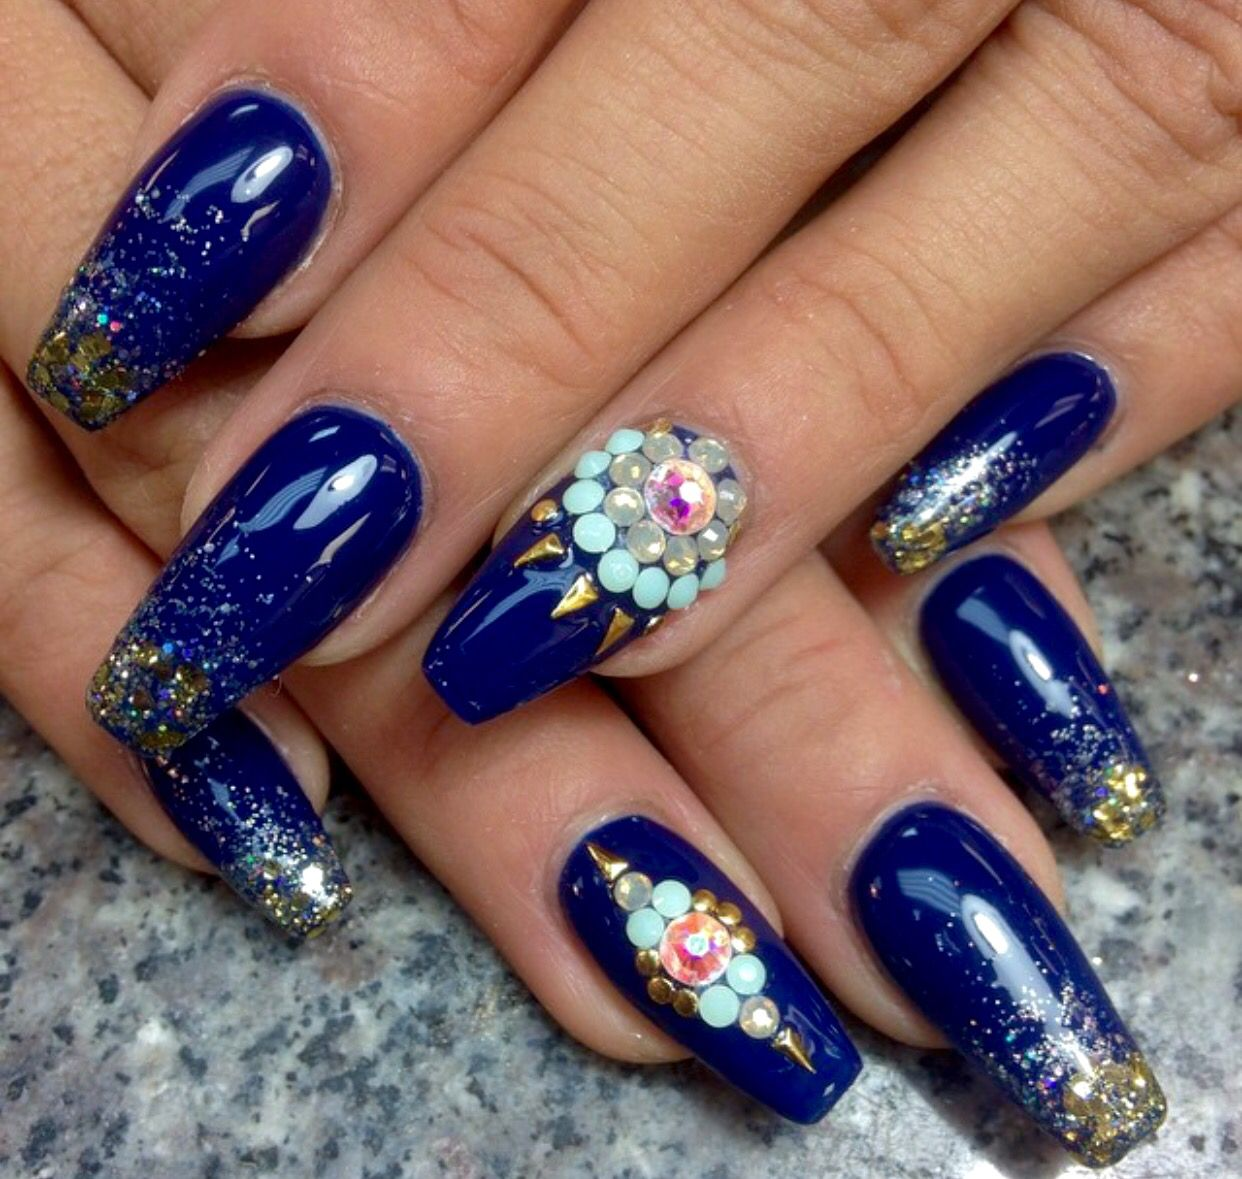 Without the gaudy jewel, these blue and gold coffin nails